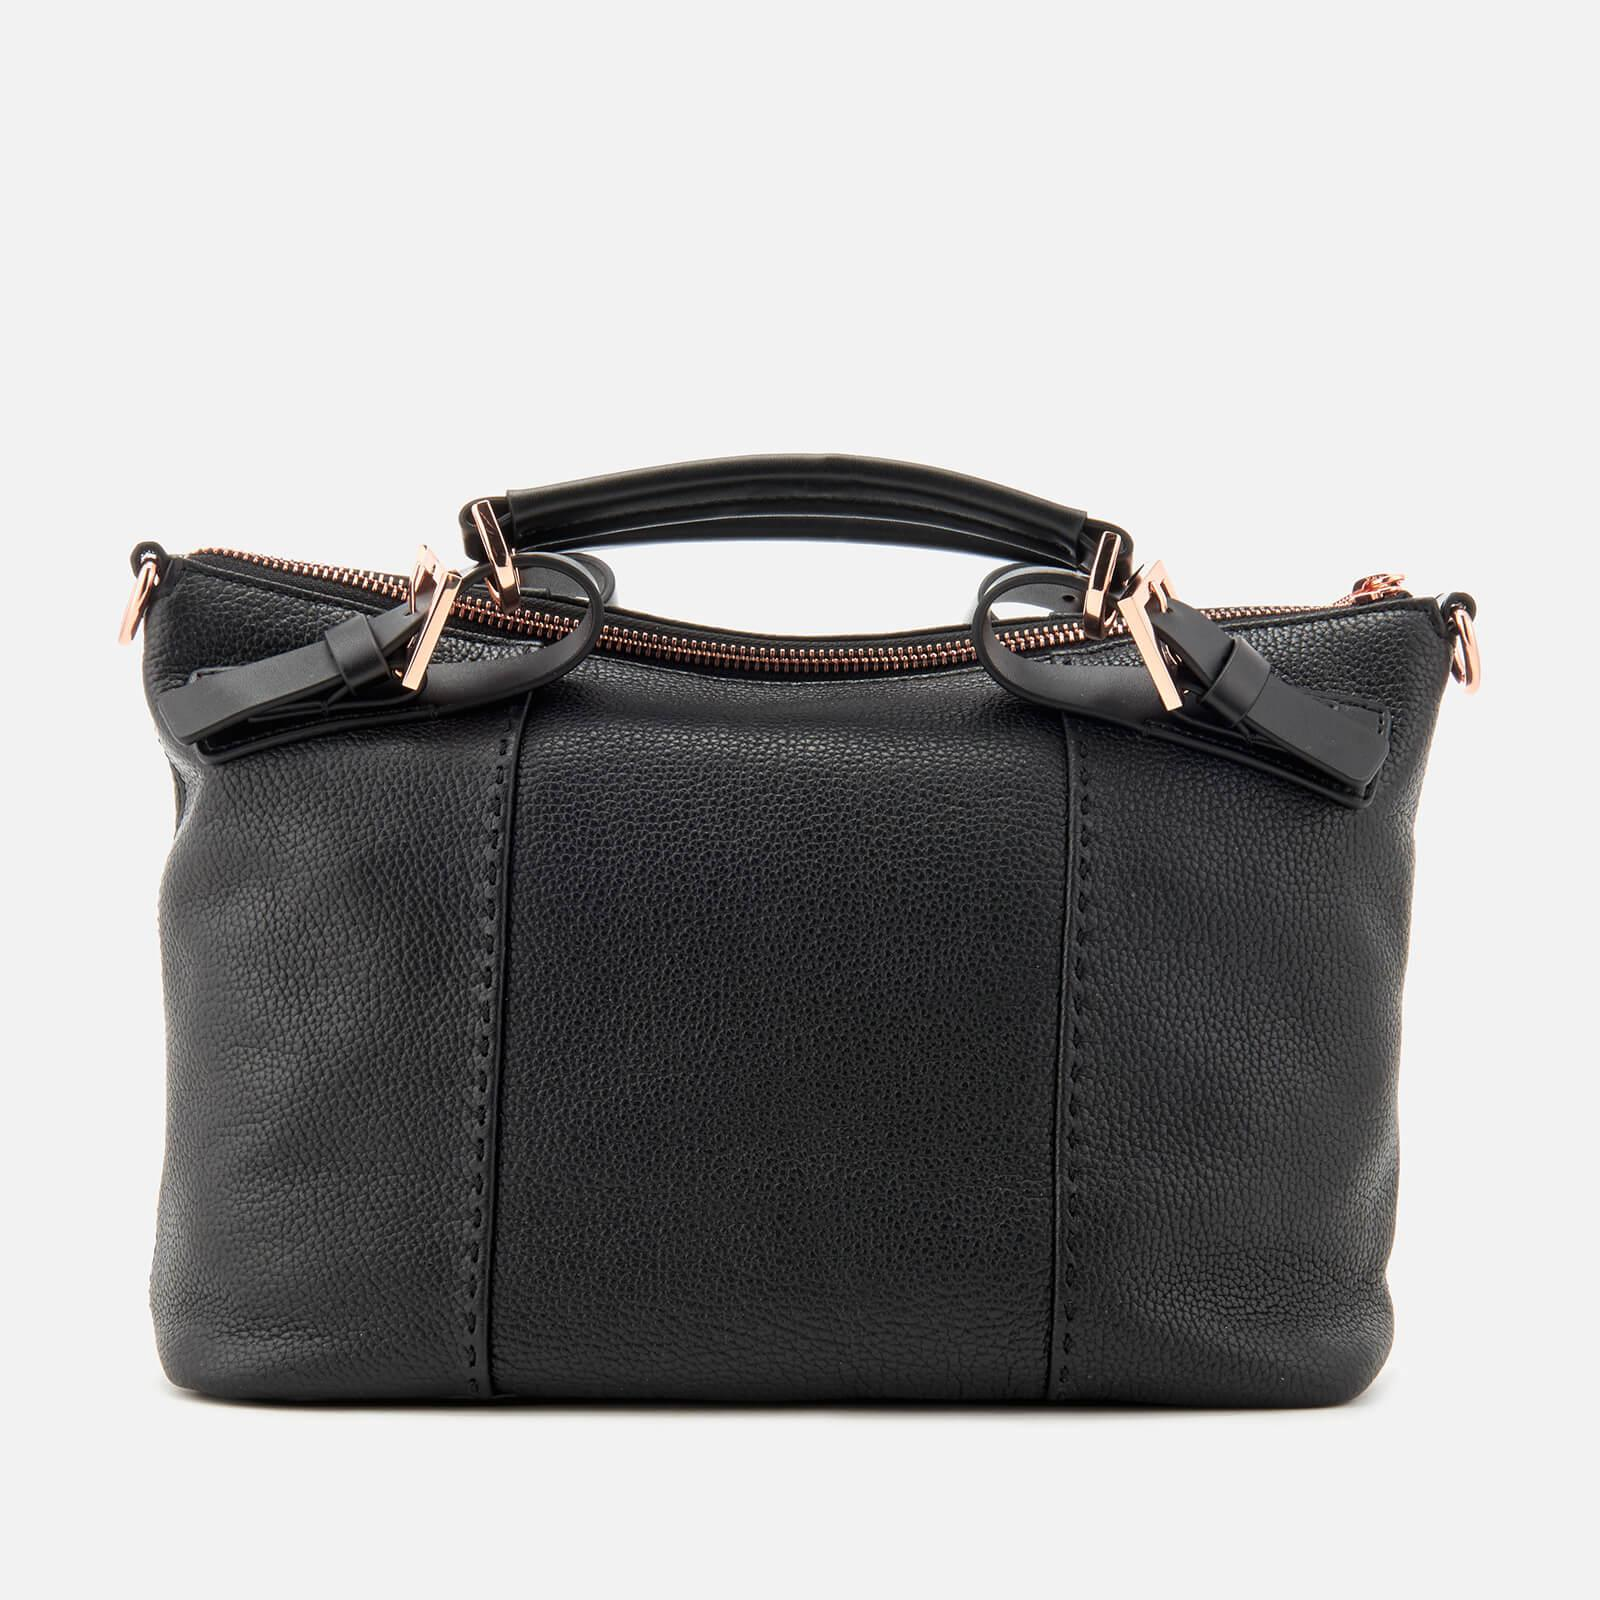 Ted Baker Leather Salbett Bridle Handle Small Tote Bag in Black